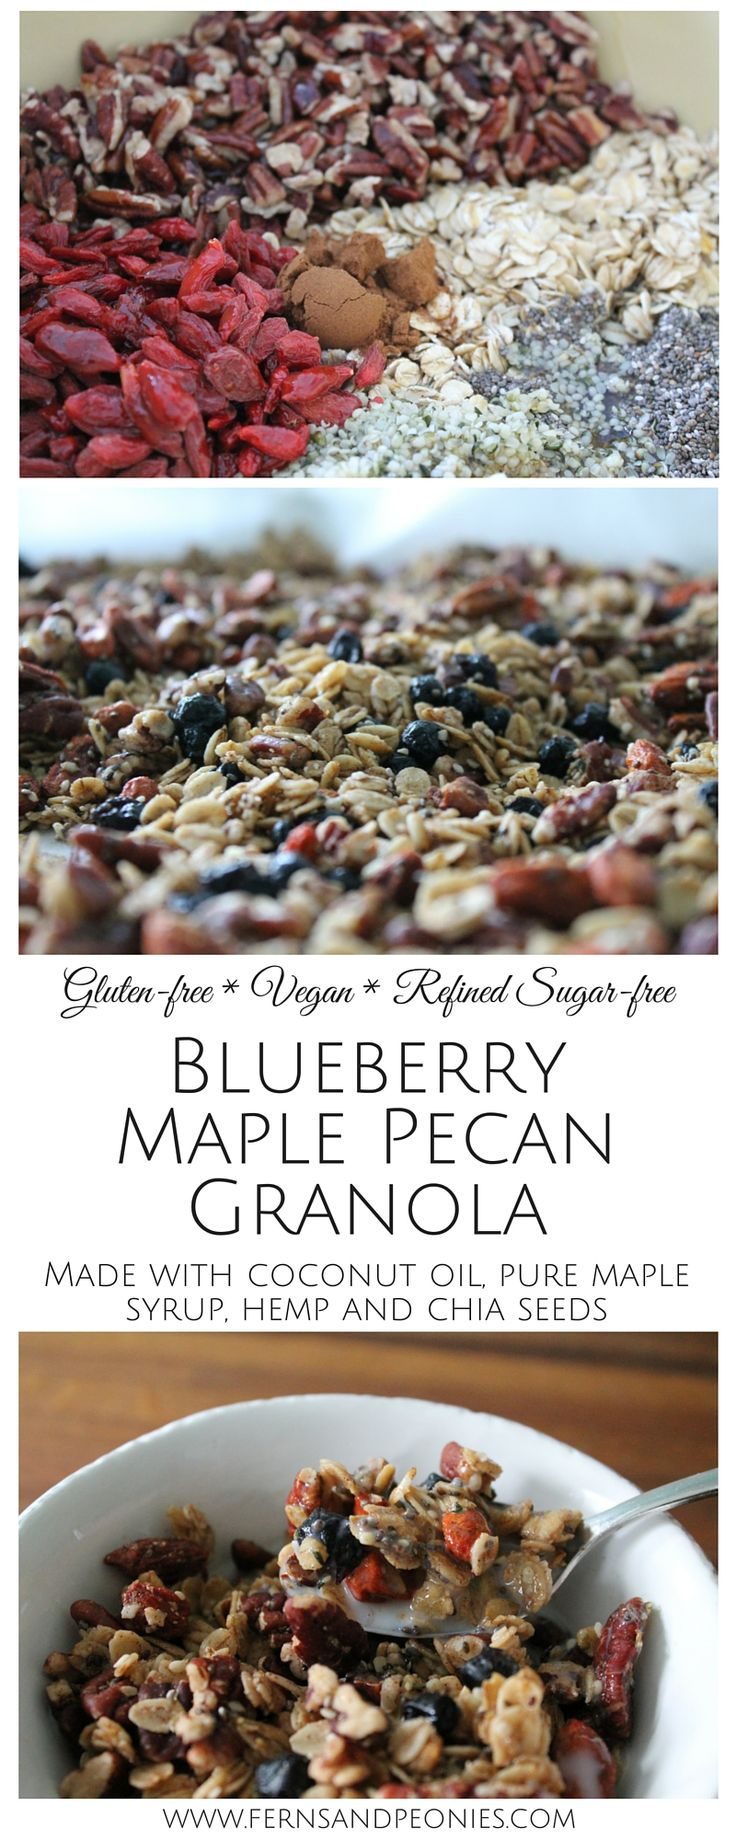 15 Must-see Pure Maple Syrup Pins | Vegan gluten free ...